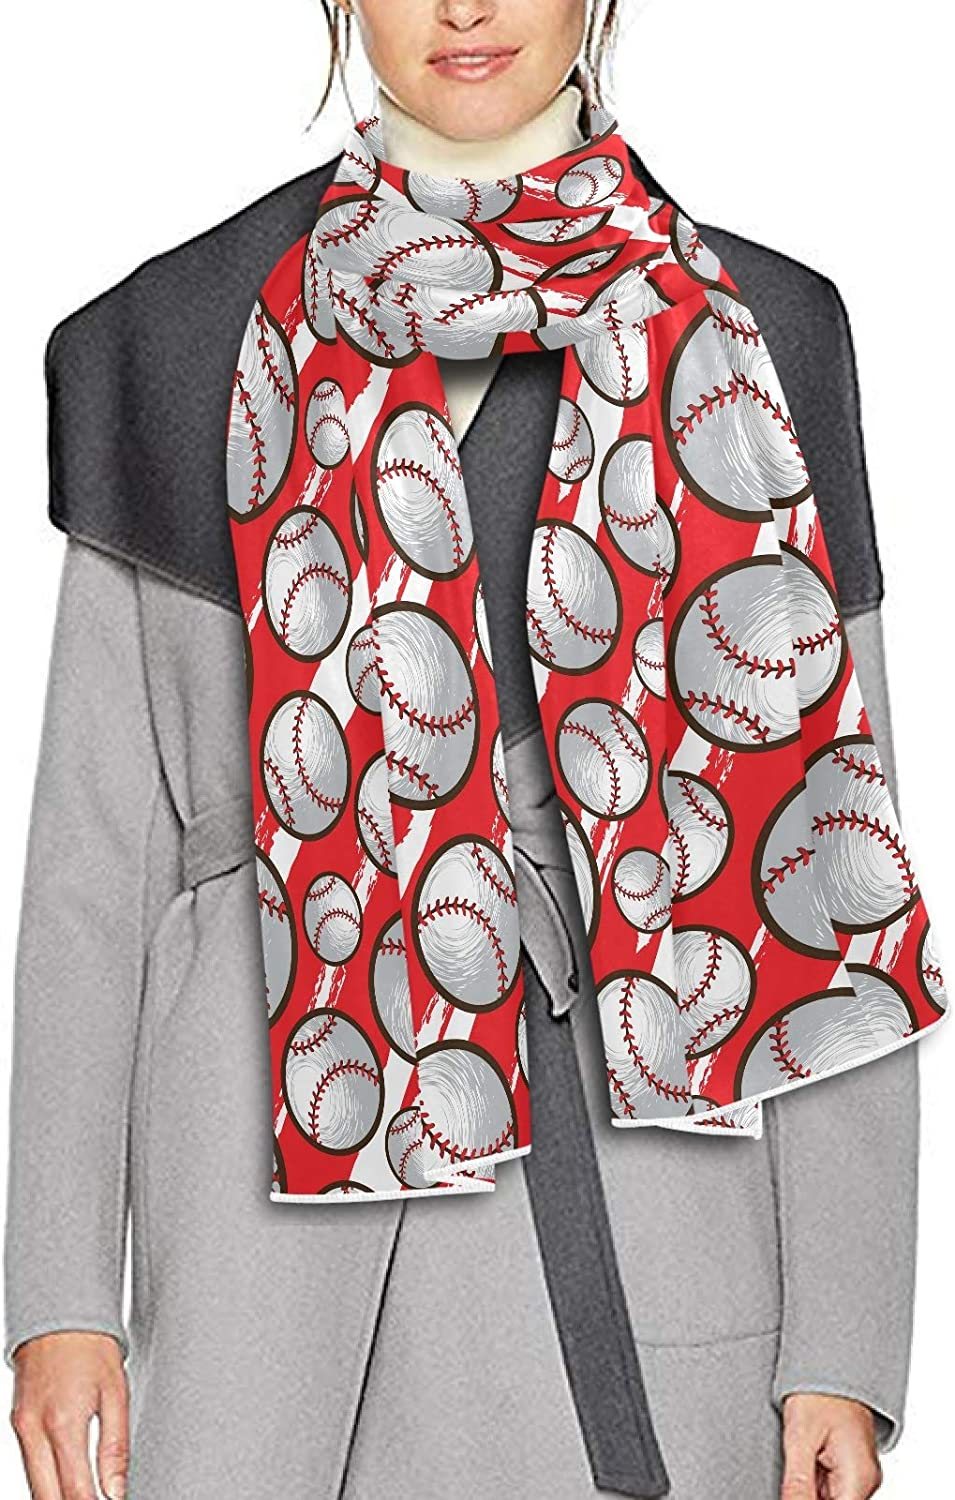 Scarf for Women and Men Red Baseball Shawl Wraps Blanket Scarf Soft Thick Winter Large Scarves Lightweight